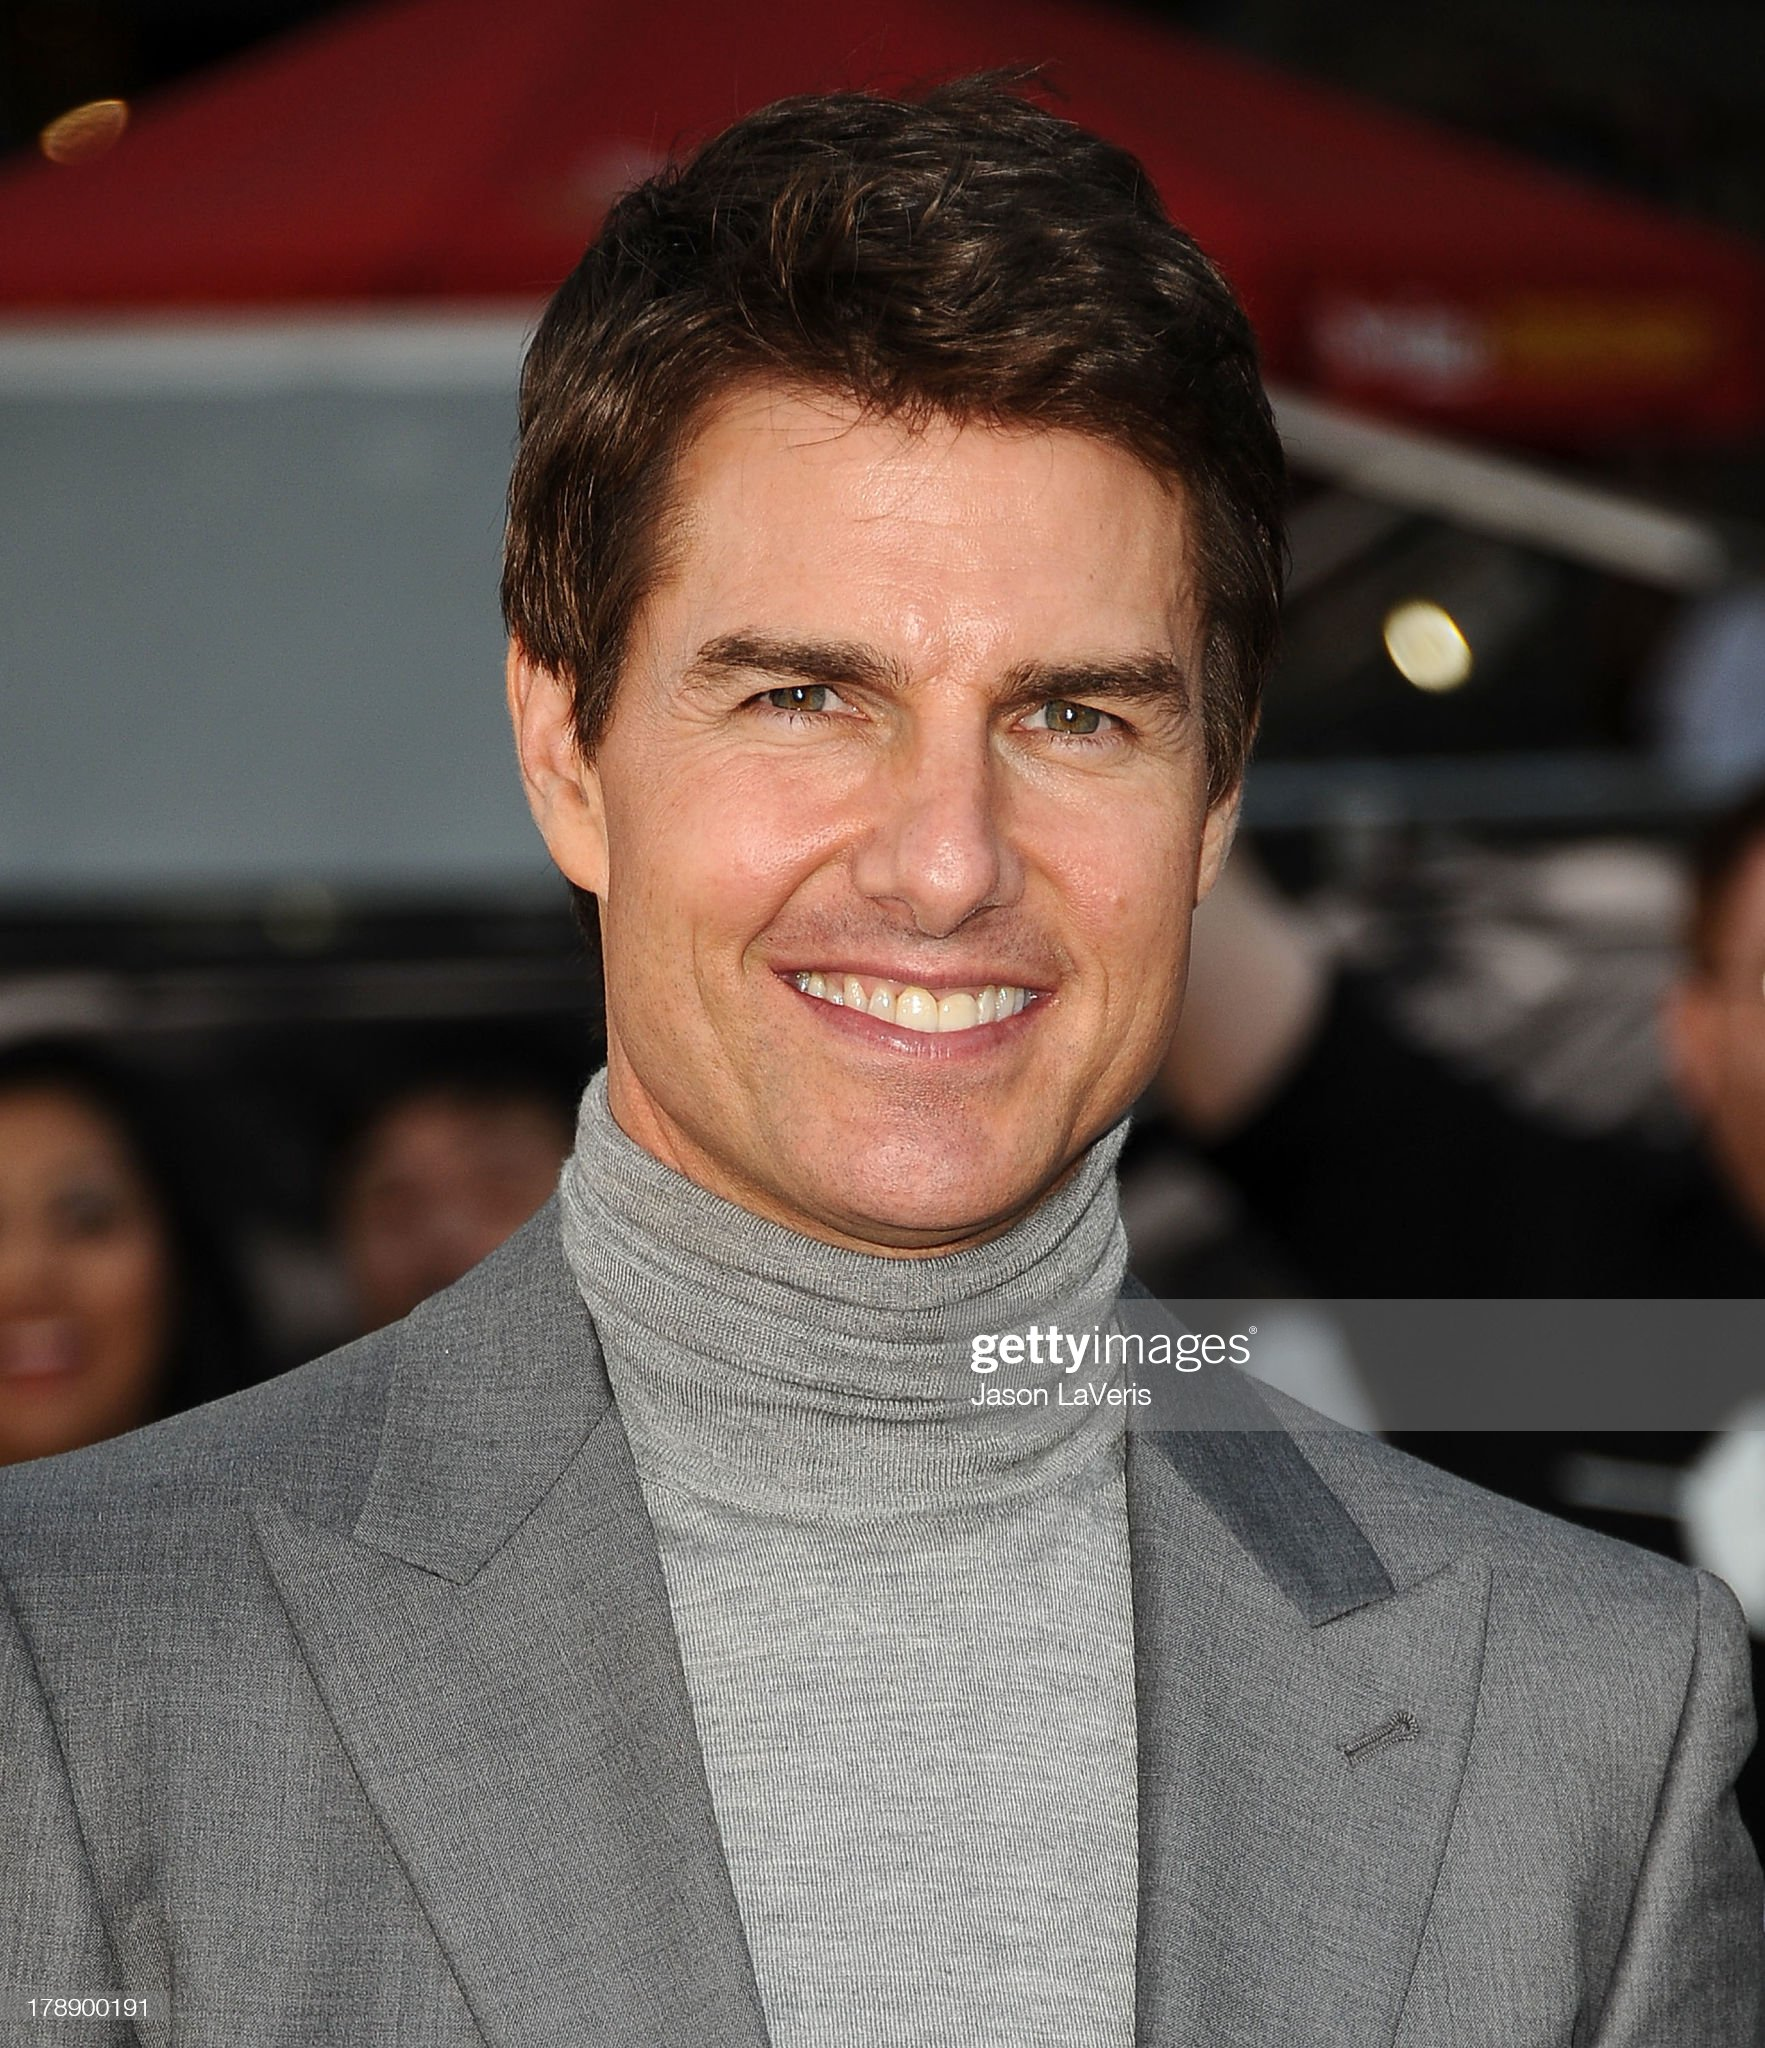 Tom Cruise (Galería de fotos) Actor-tom-cruise-attends-the-premiere-of-oblivion-at-the-dolby-on-picture-id178900191?s=2048x2048